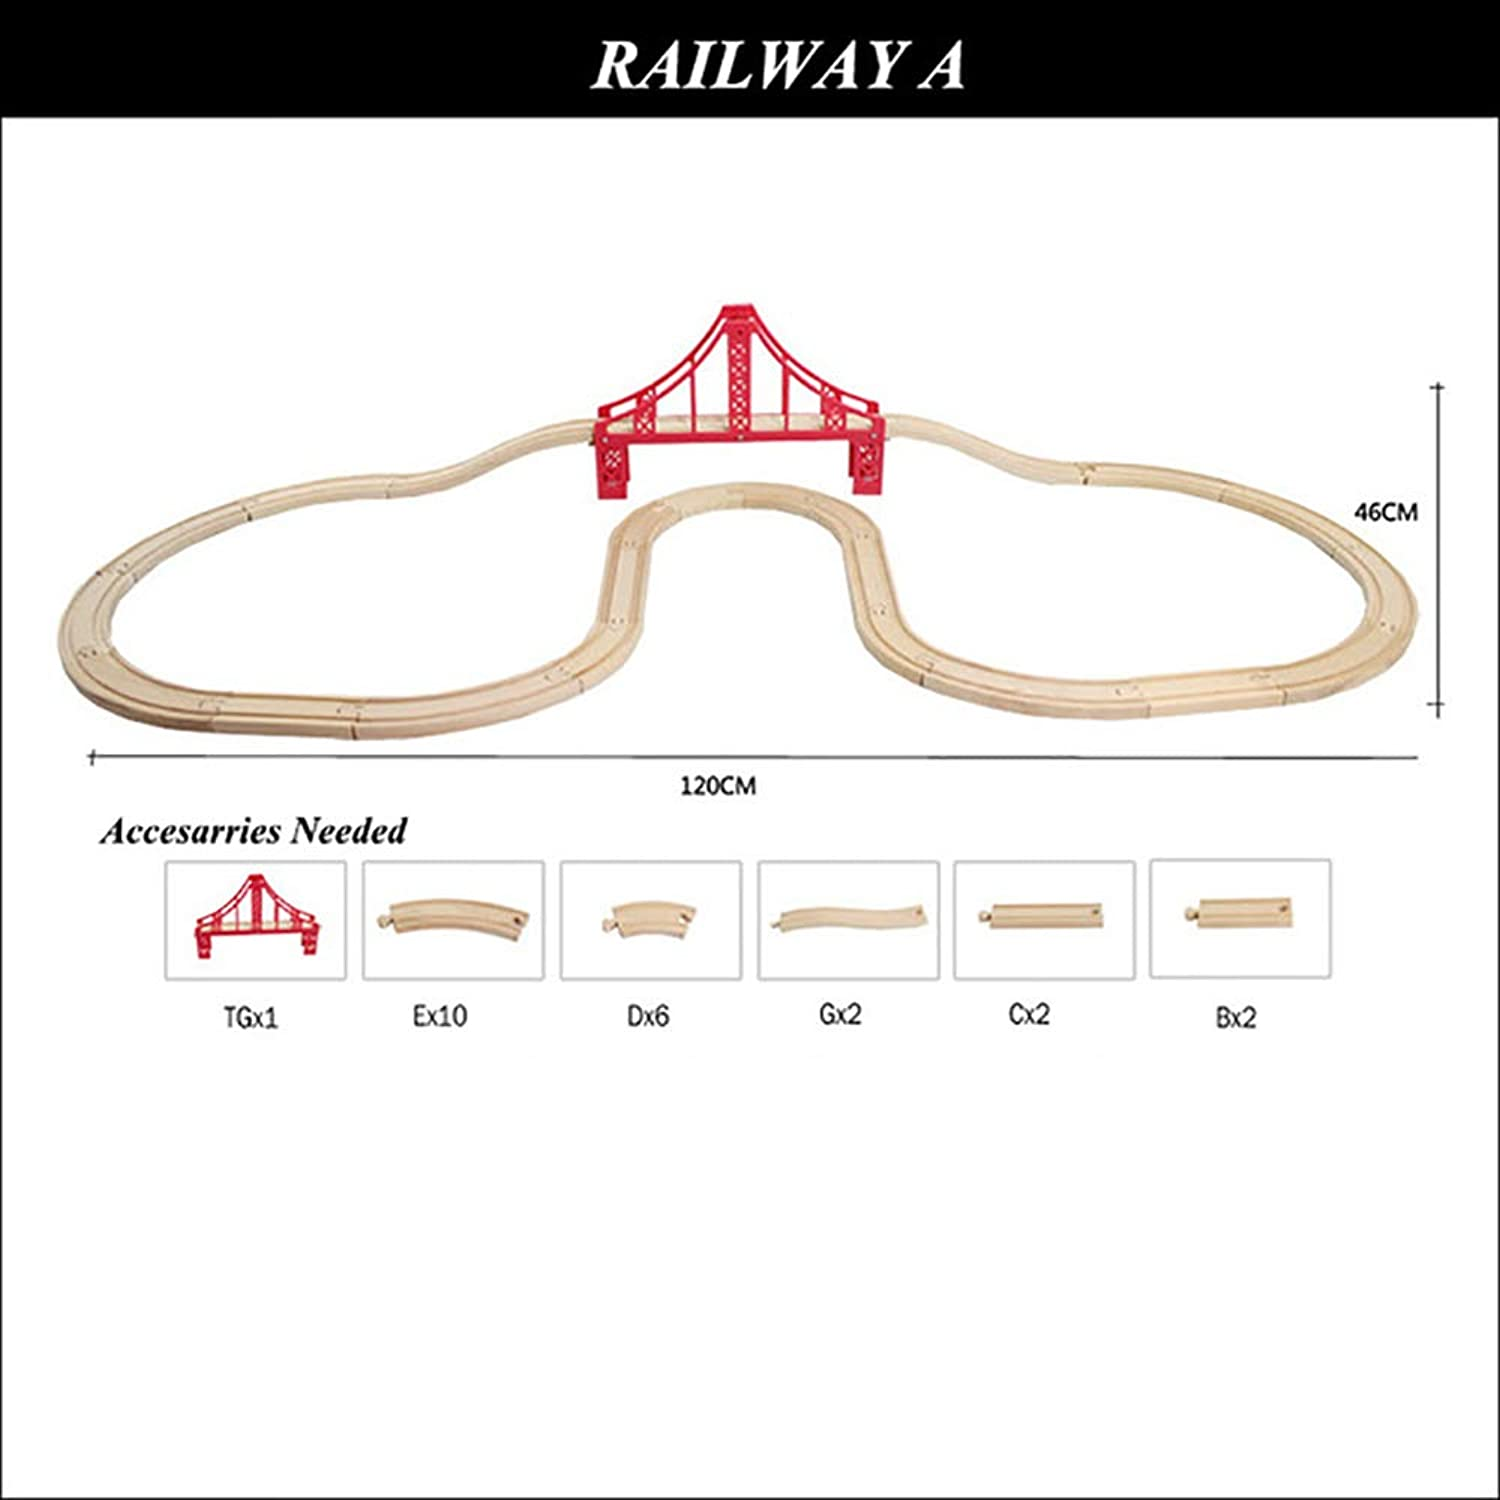 Wooden Railway Straight and Curved Expansion Track for Train Take-n-Play Motorized Electric Train Track Master Toys Accessories ( 6)